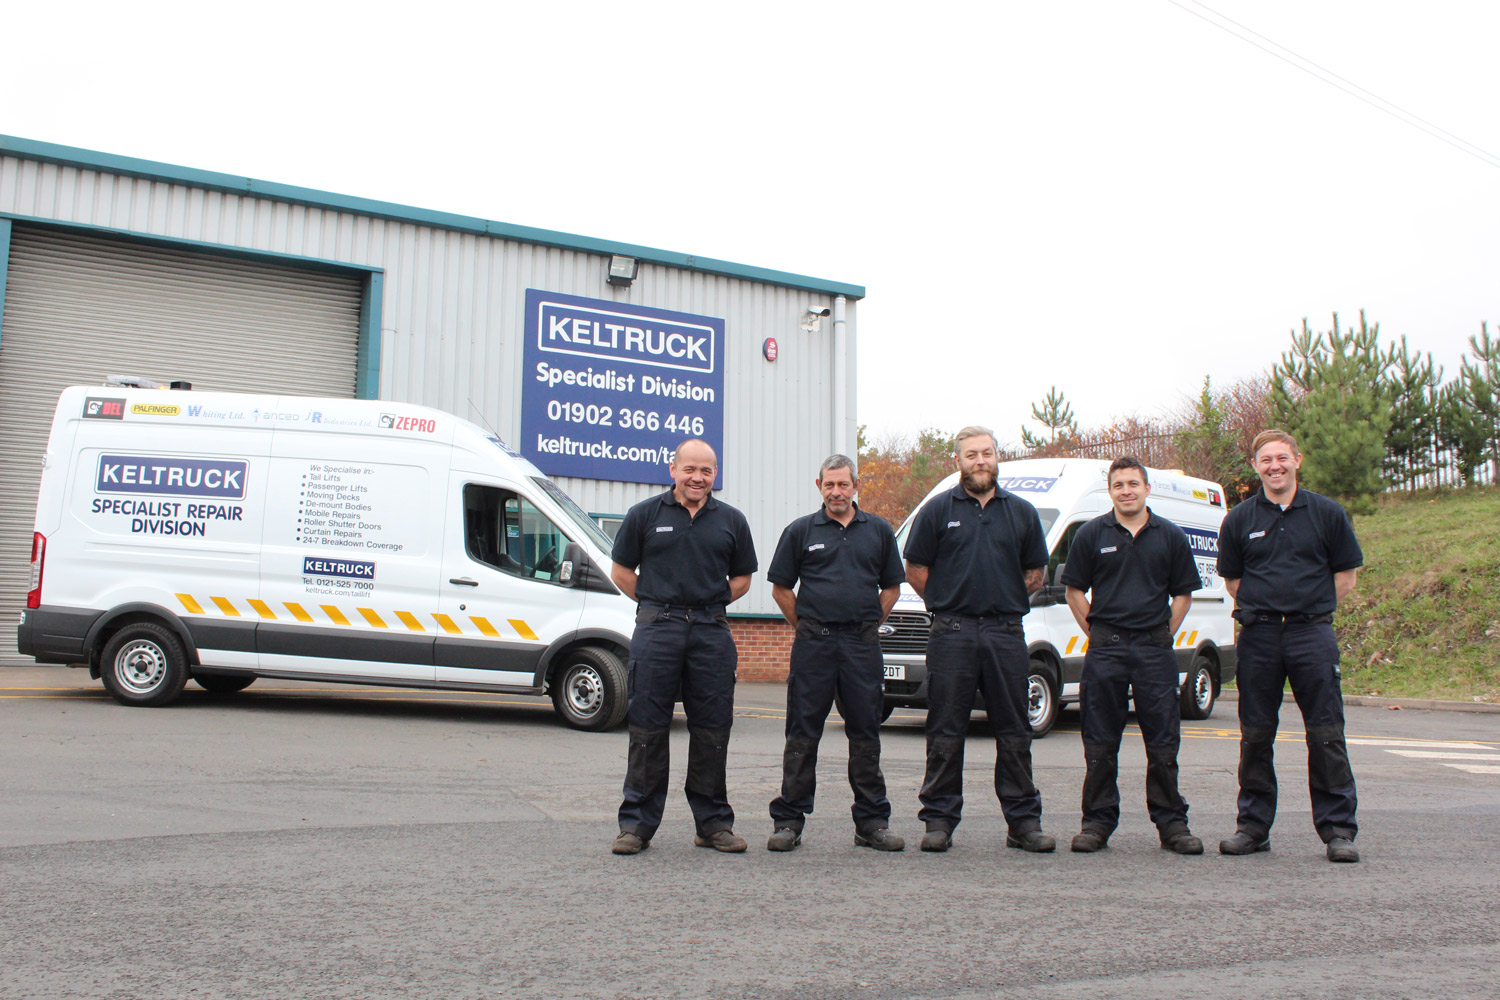 Specialist Services from Keltruck